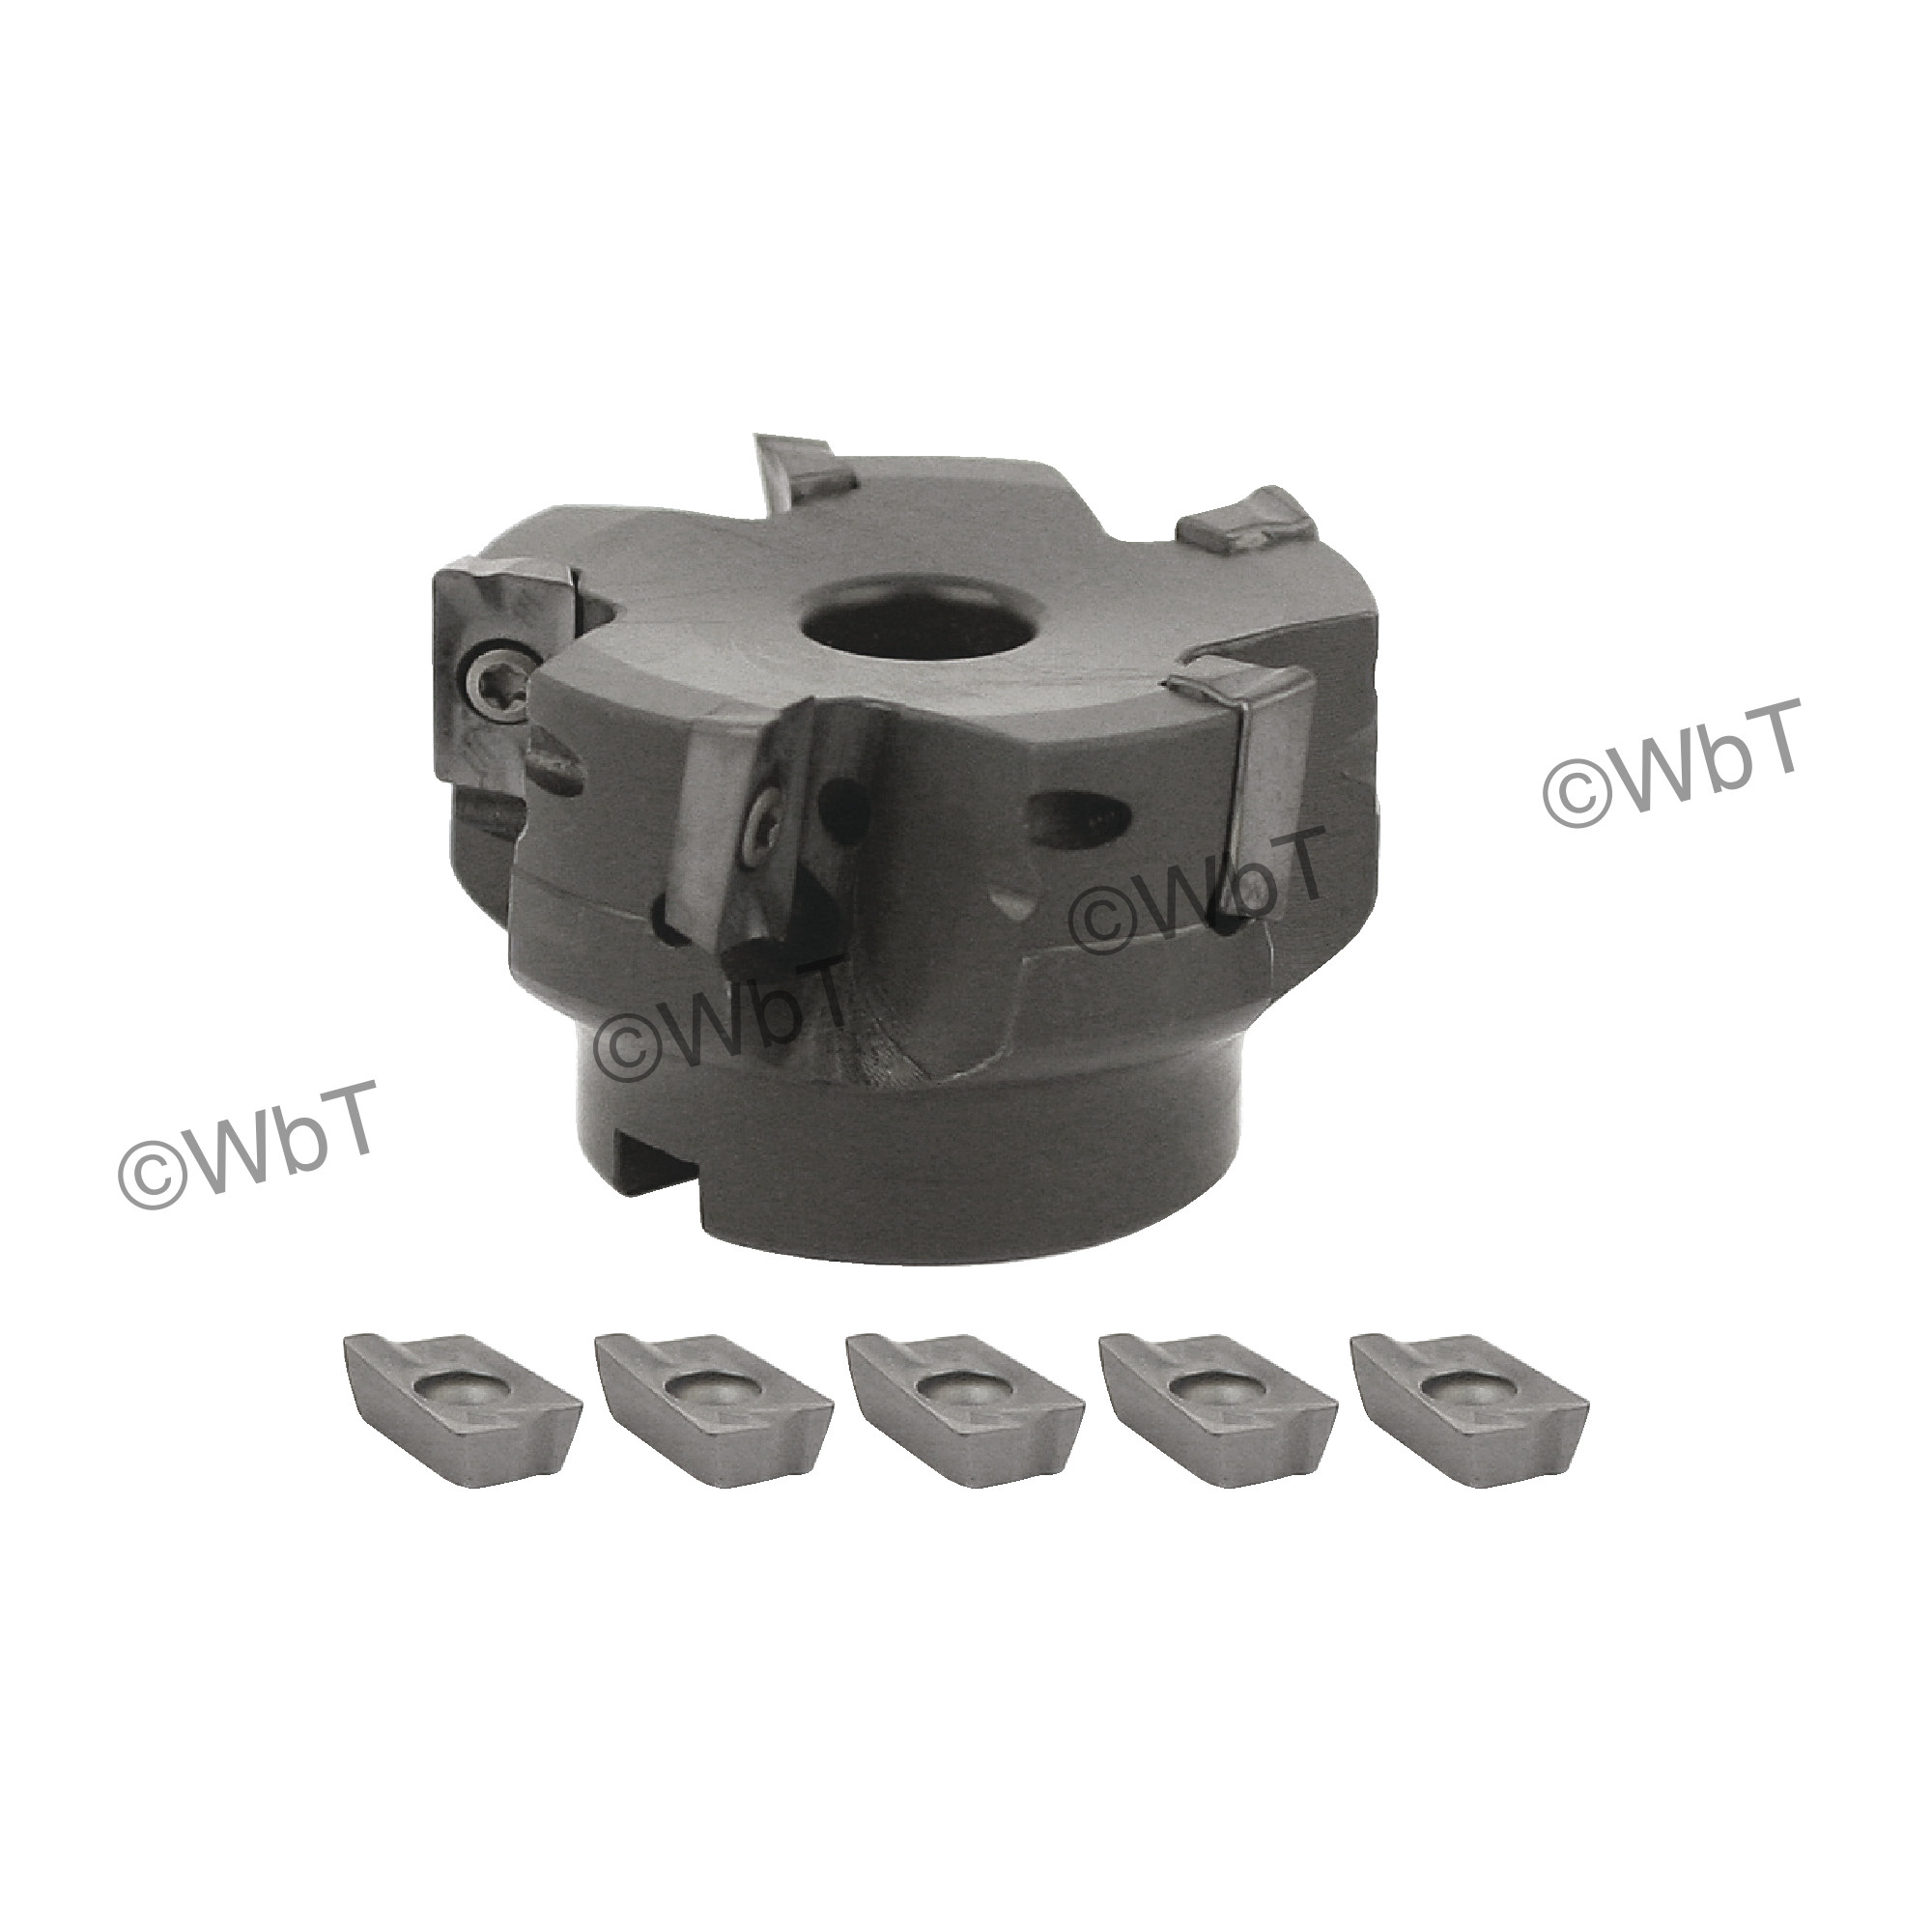 """AKUMA - 2.500"""" Face Mill Set / Includes: (1) APPC.16.250R-6 (2.5"""" ø) & (10) APKT1604PDR-M1 PM20M Coated Inserts /"""